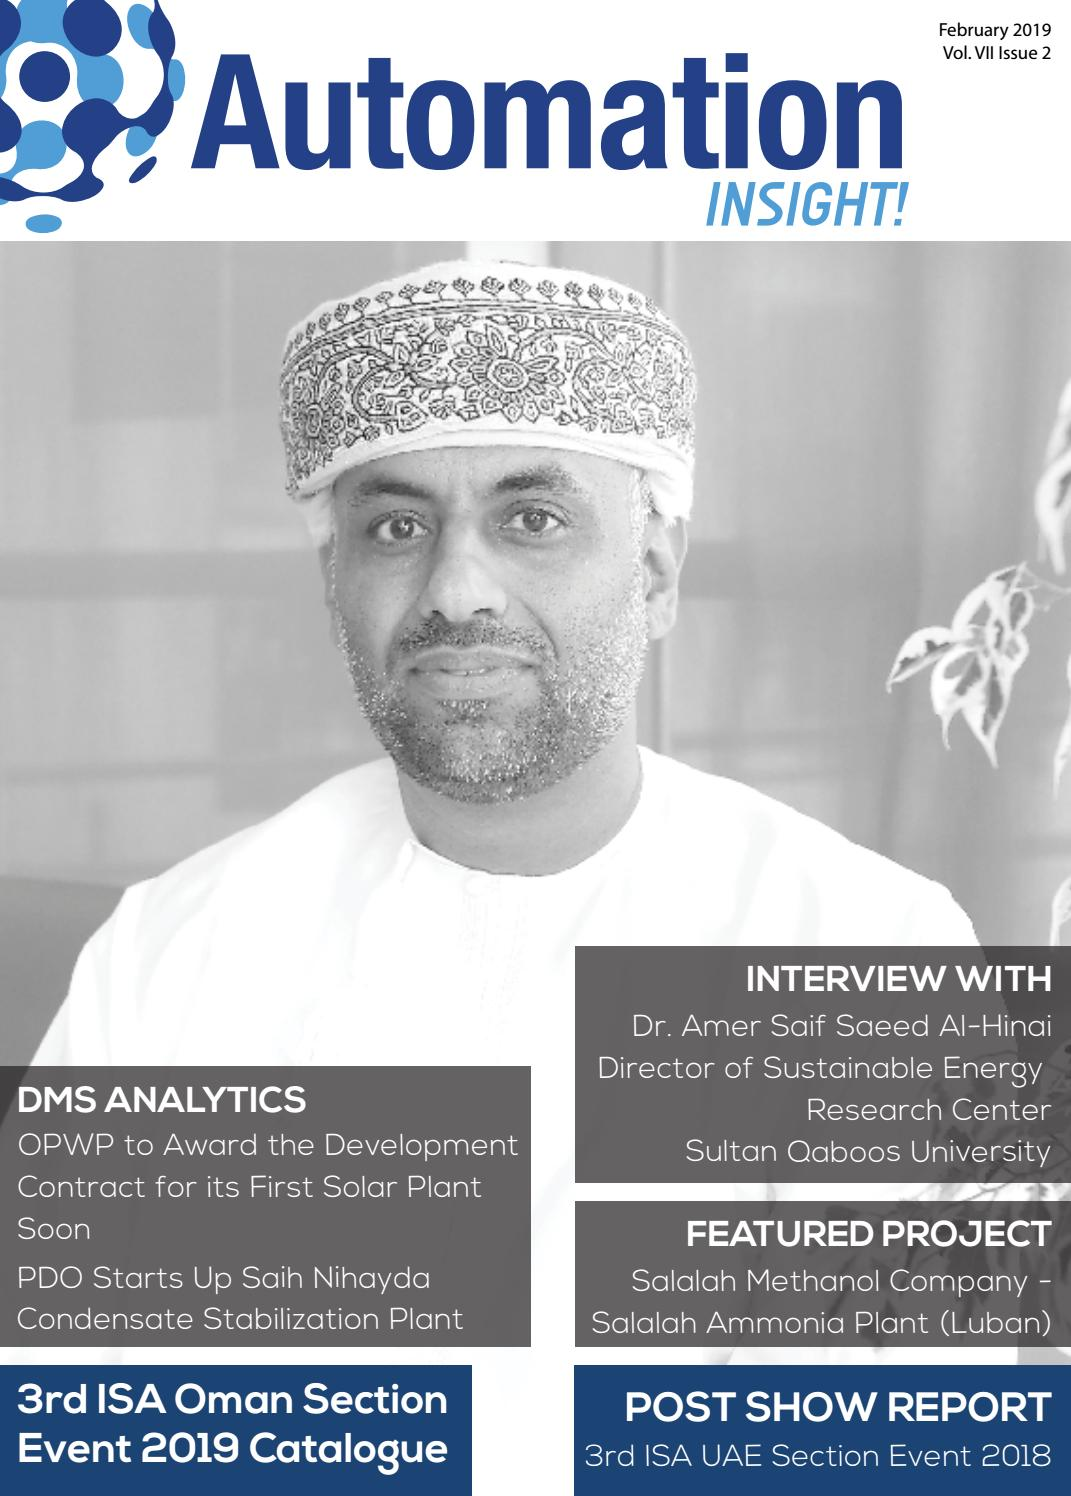 Automation INSIGHT! 3rd ISA Oman Section Event 2019, Vol 7